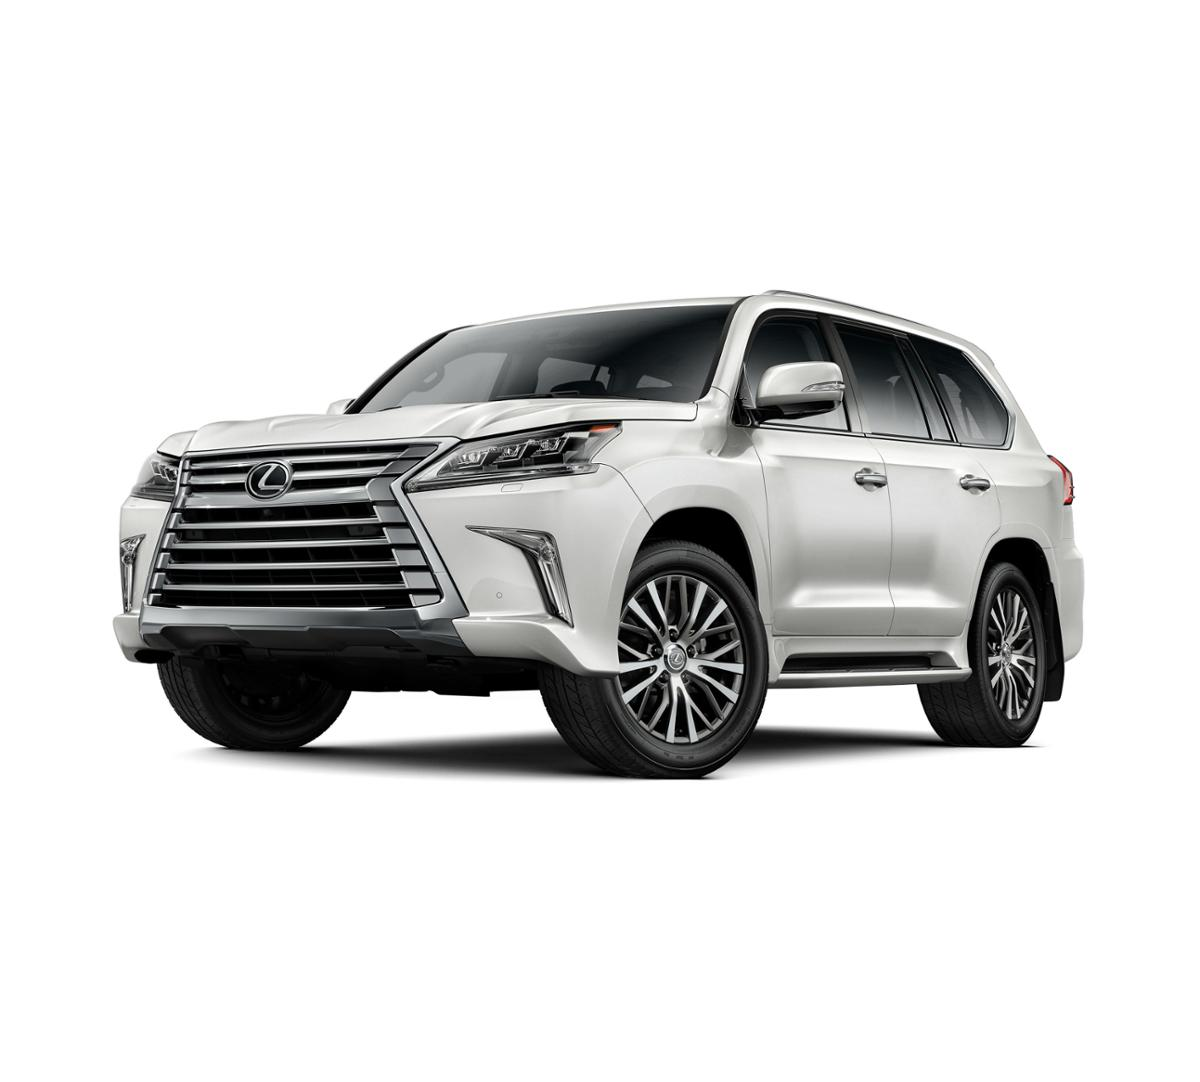 new 2017 lexus lx 570 starfire pearl for sale in houston pearland league city tx. Black Bedroom Furniture Sets. Home Design Ideas